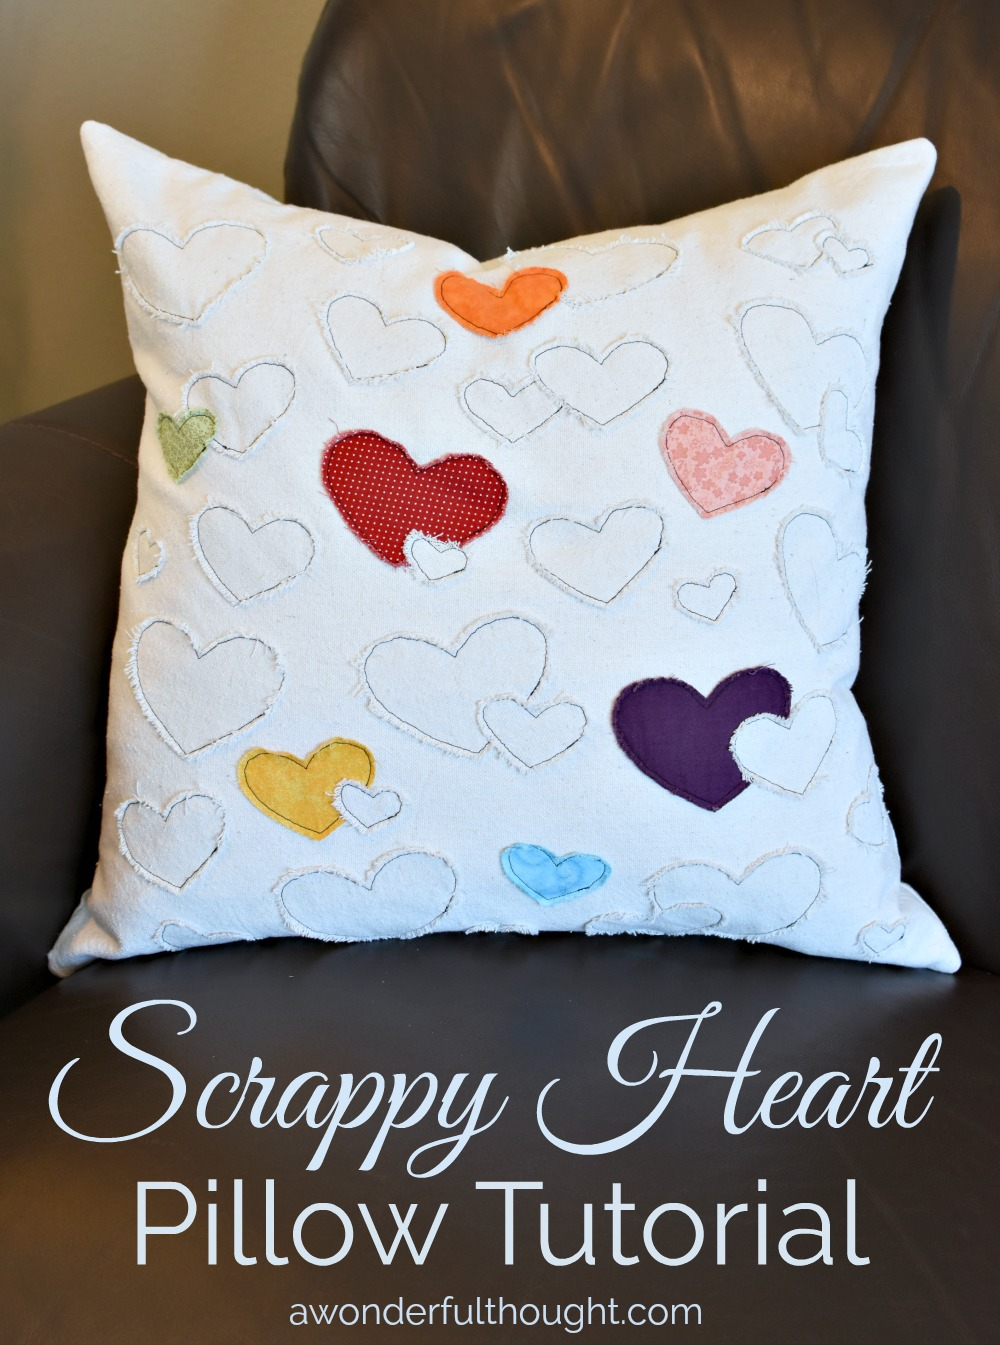 This scrappy heart pillow is perfect for Valentine's Day or anytime! #diypillow #valentinesdecor #valentinespillow #awonderfulthought